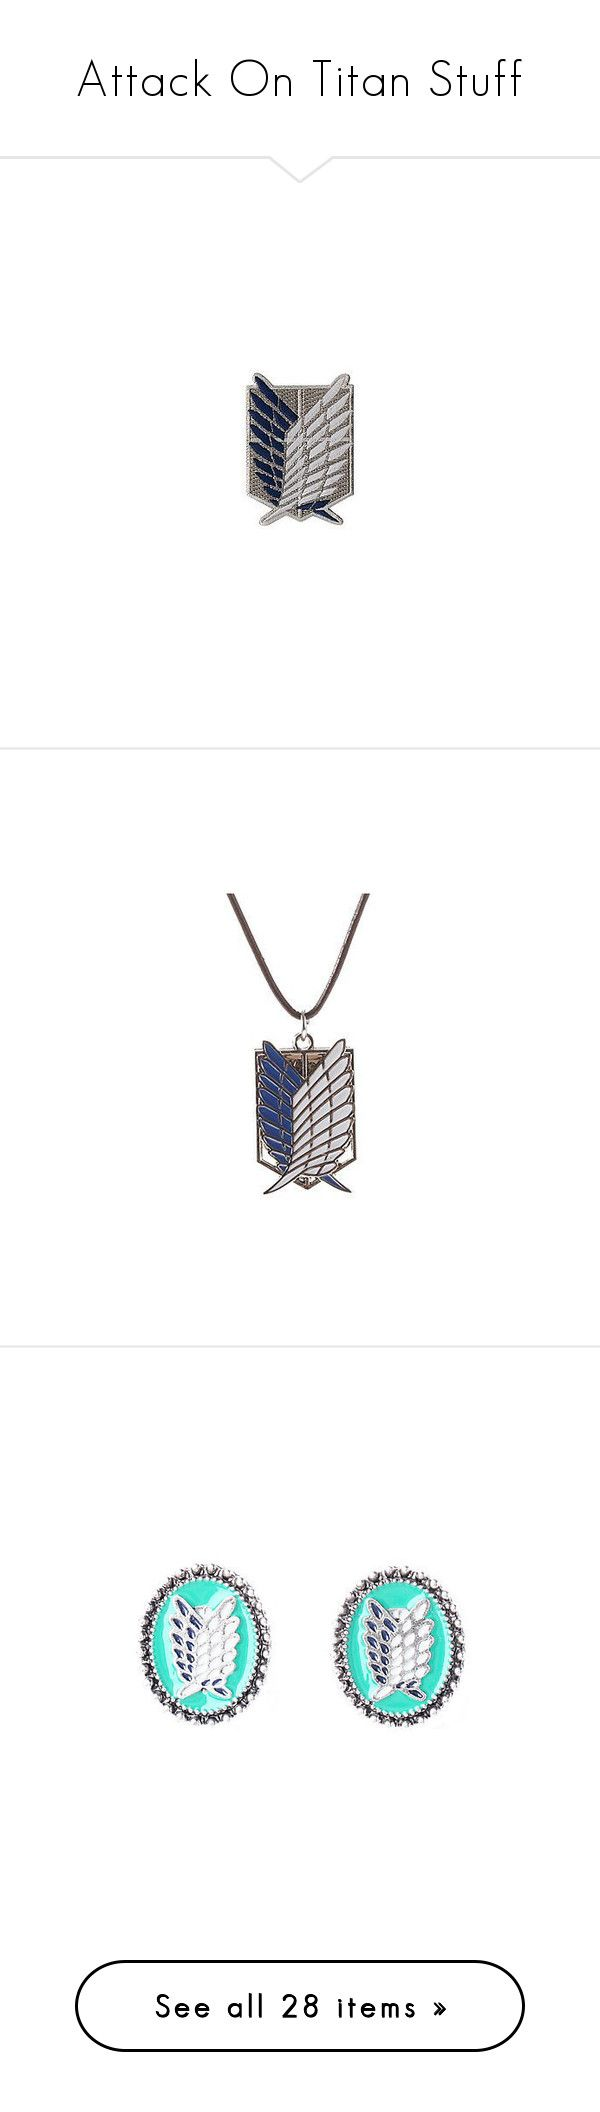 """""""Attack On Titan Stuff"""" by llamabeans ❤ liked on Polyvore featuring fillers, jewelry, necklaces, accessories, anime, aot, animal pendant necklace, wing necklace, animal jewelry and animal necklaces"""